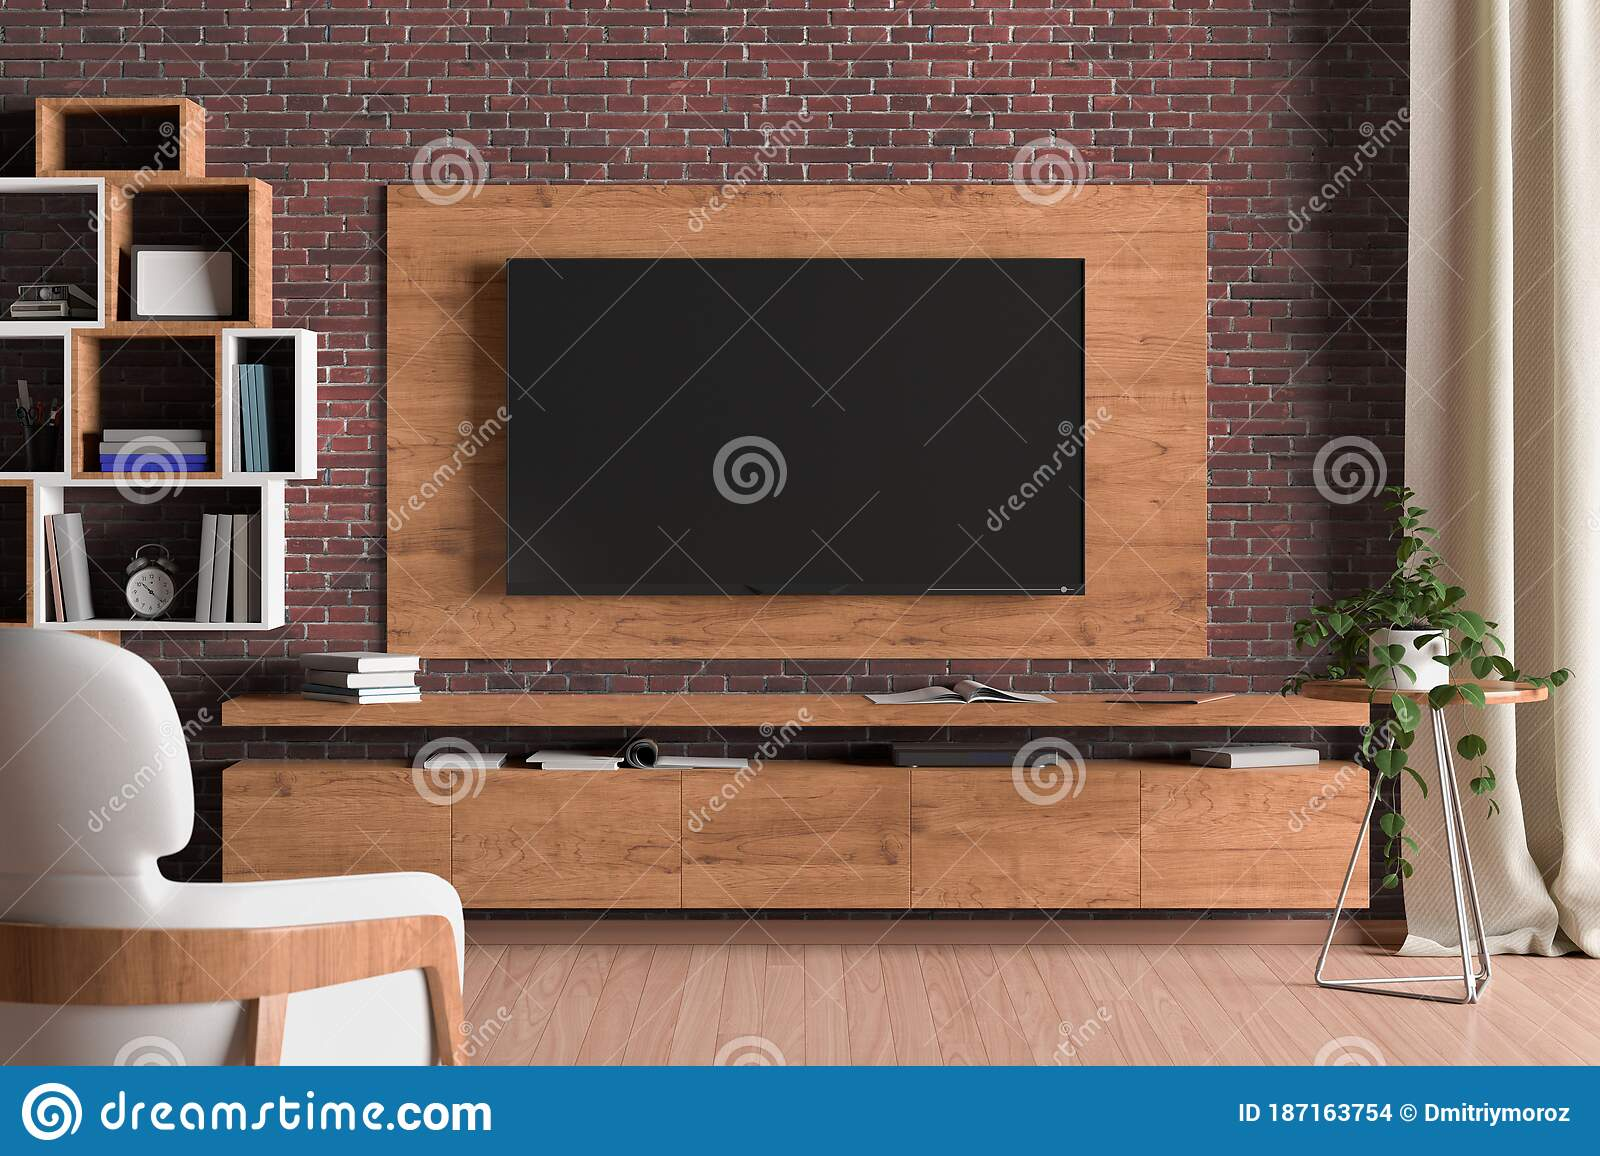 TV Screen On The Wall With Wooden Plate Above The Cabinet In ...